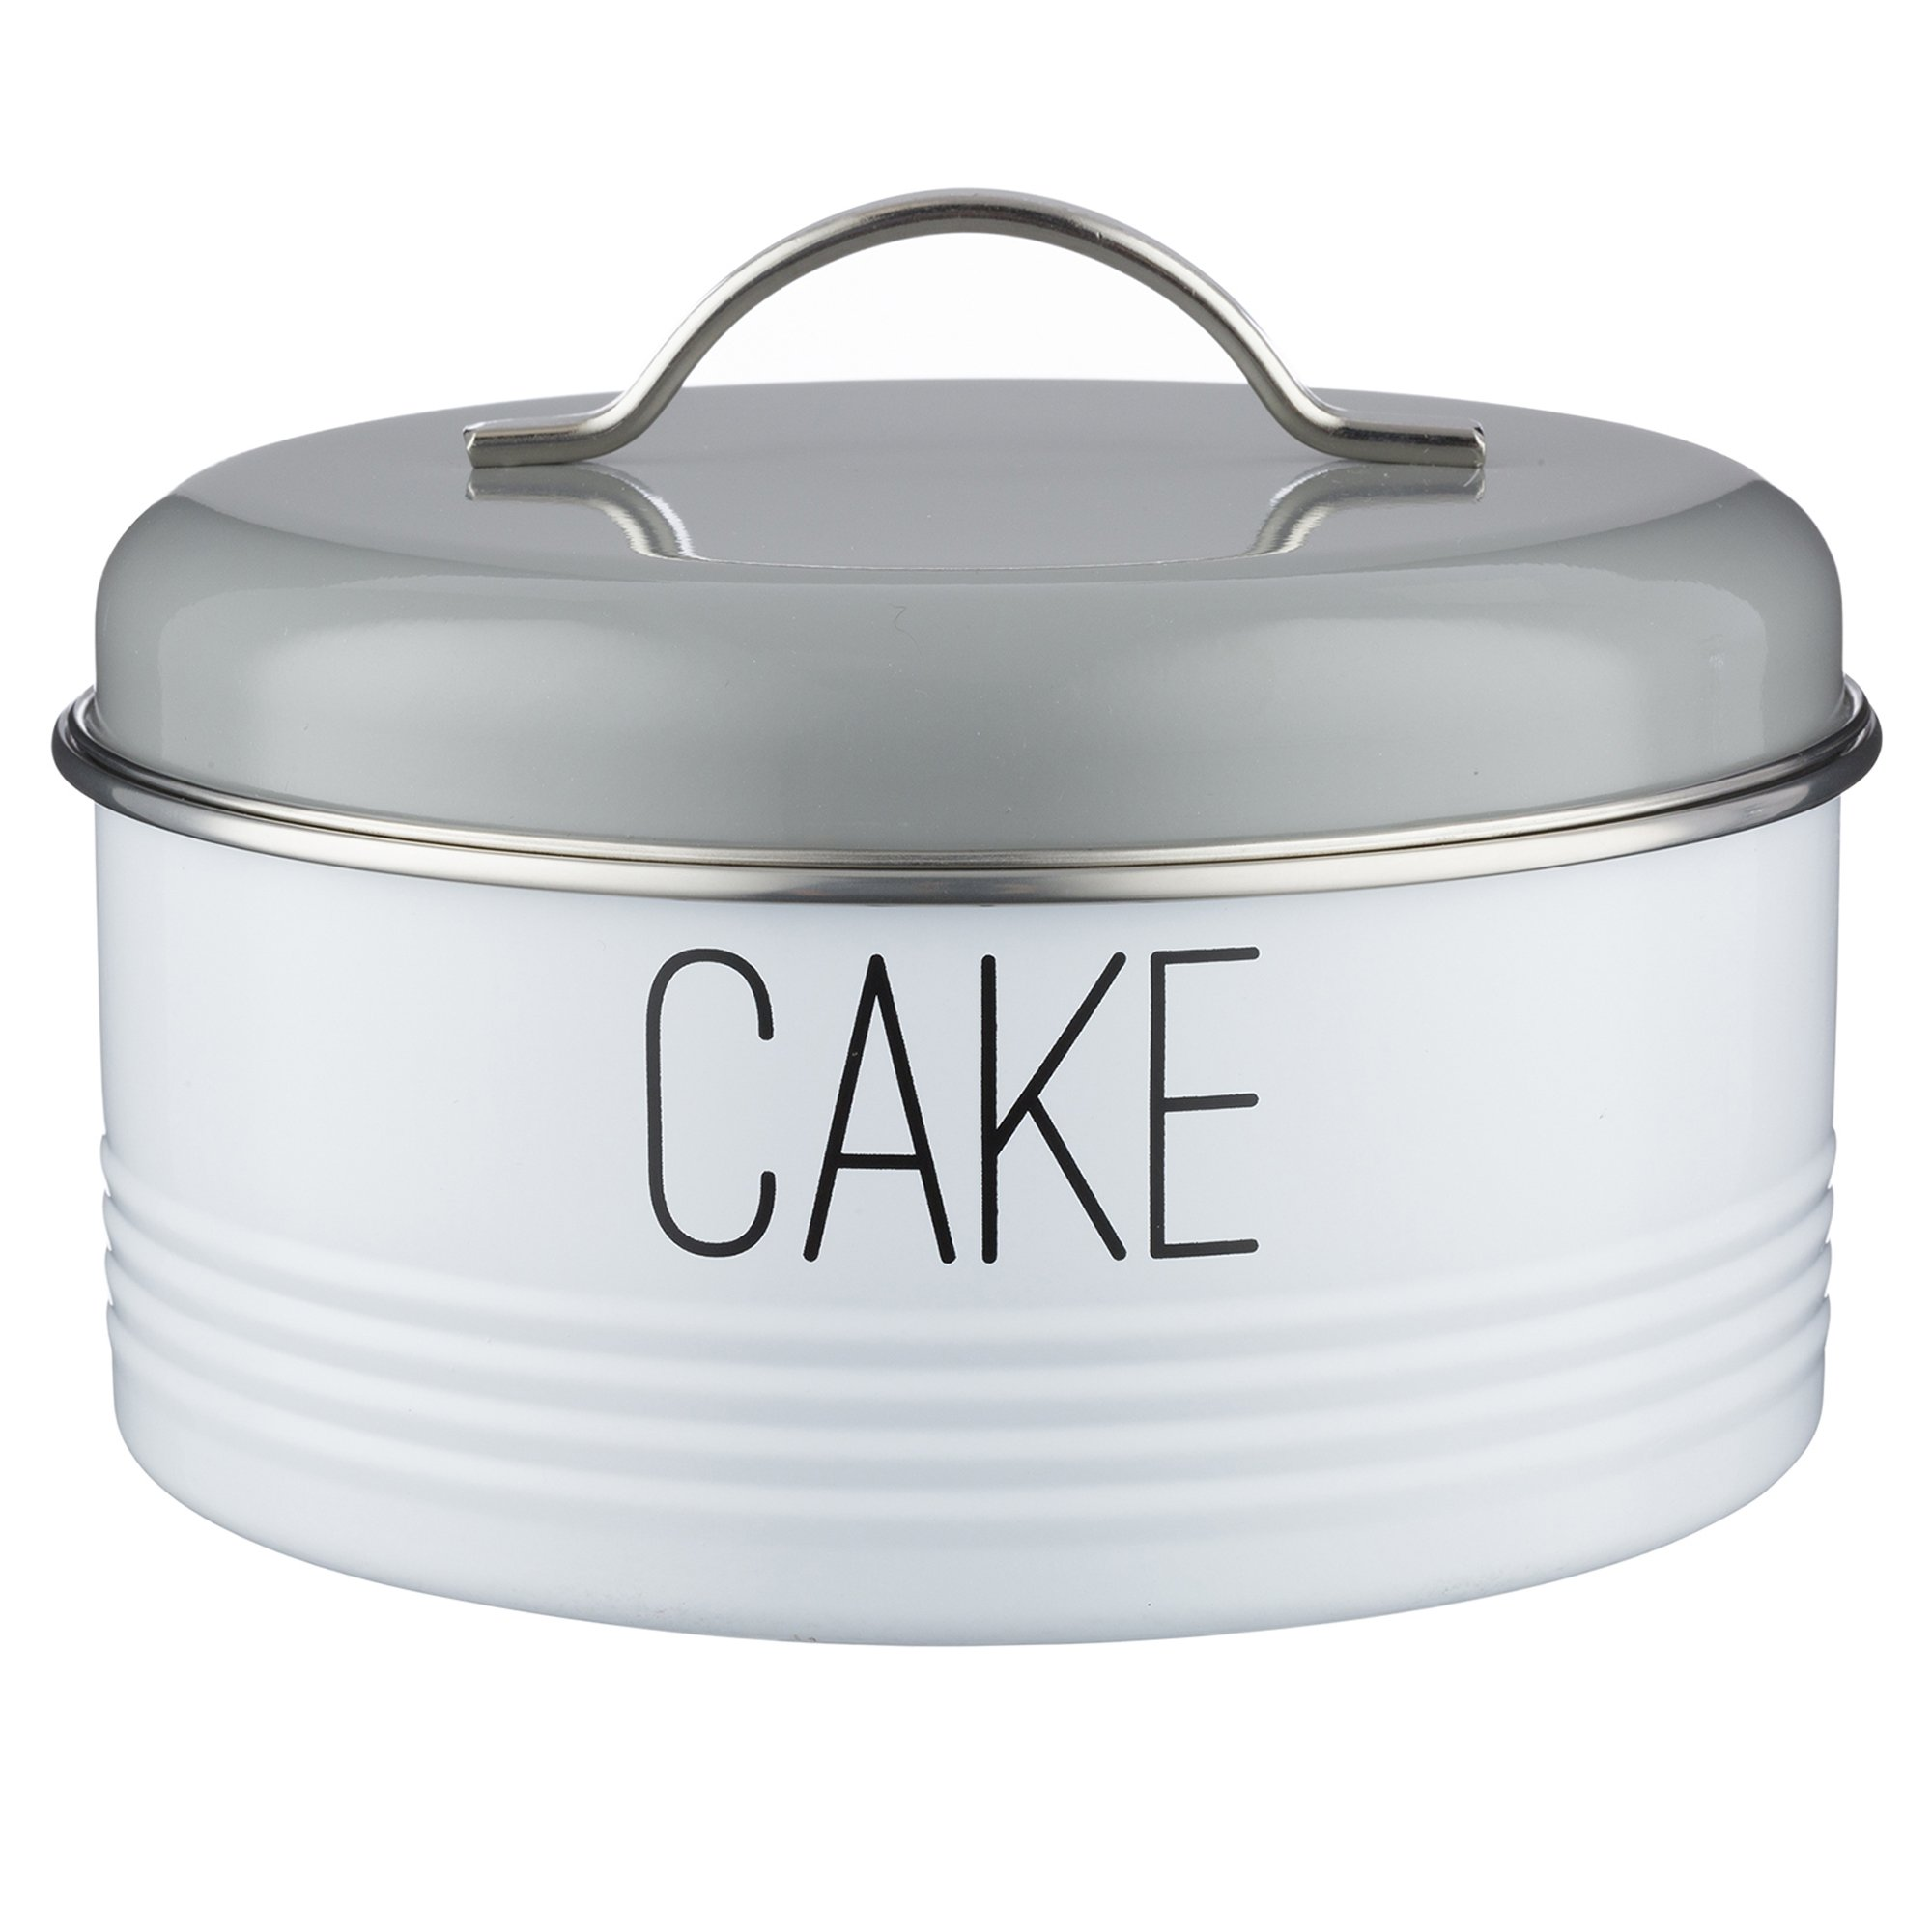 Typhoon Vintage Mayfair Coated Steel Cake Storage Tin with Airtight Lid; Designed To Hold Cakes, Muffins and Sweet Treats; 128-Fluid Ounces; Gray and White